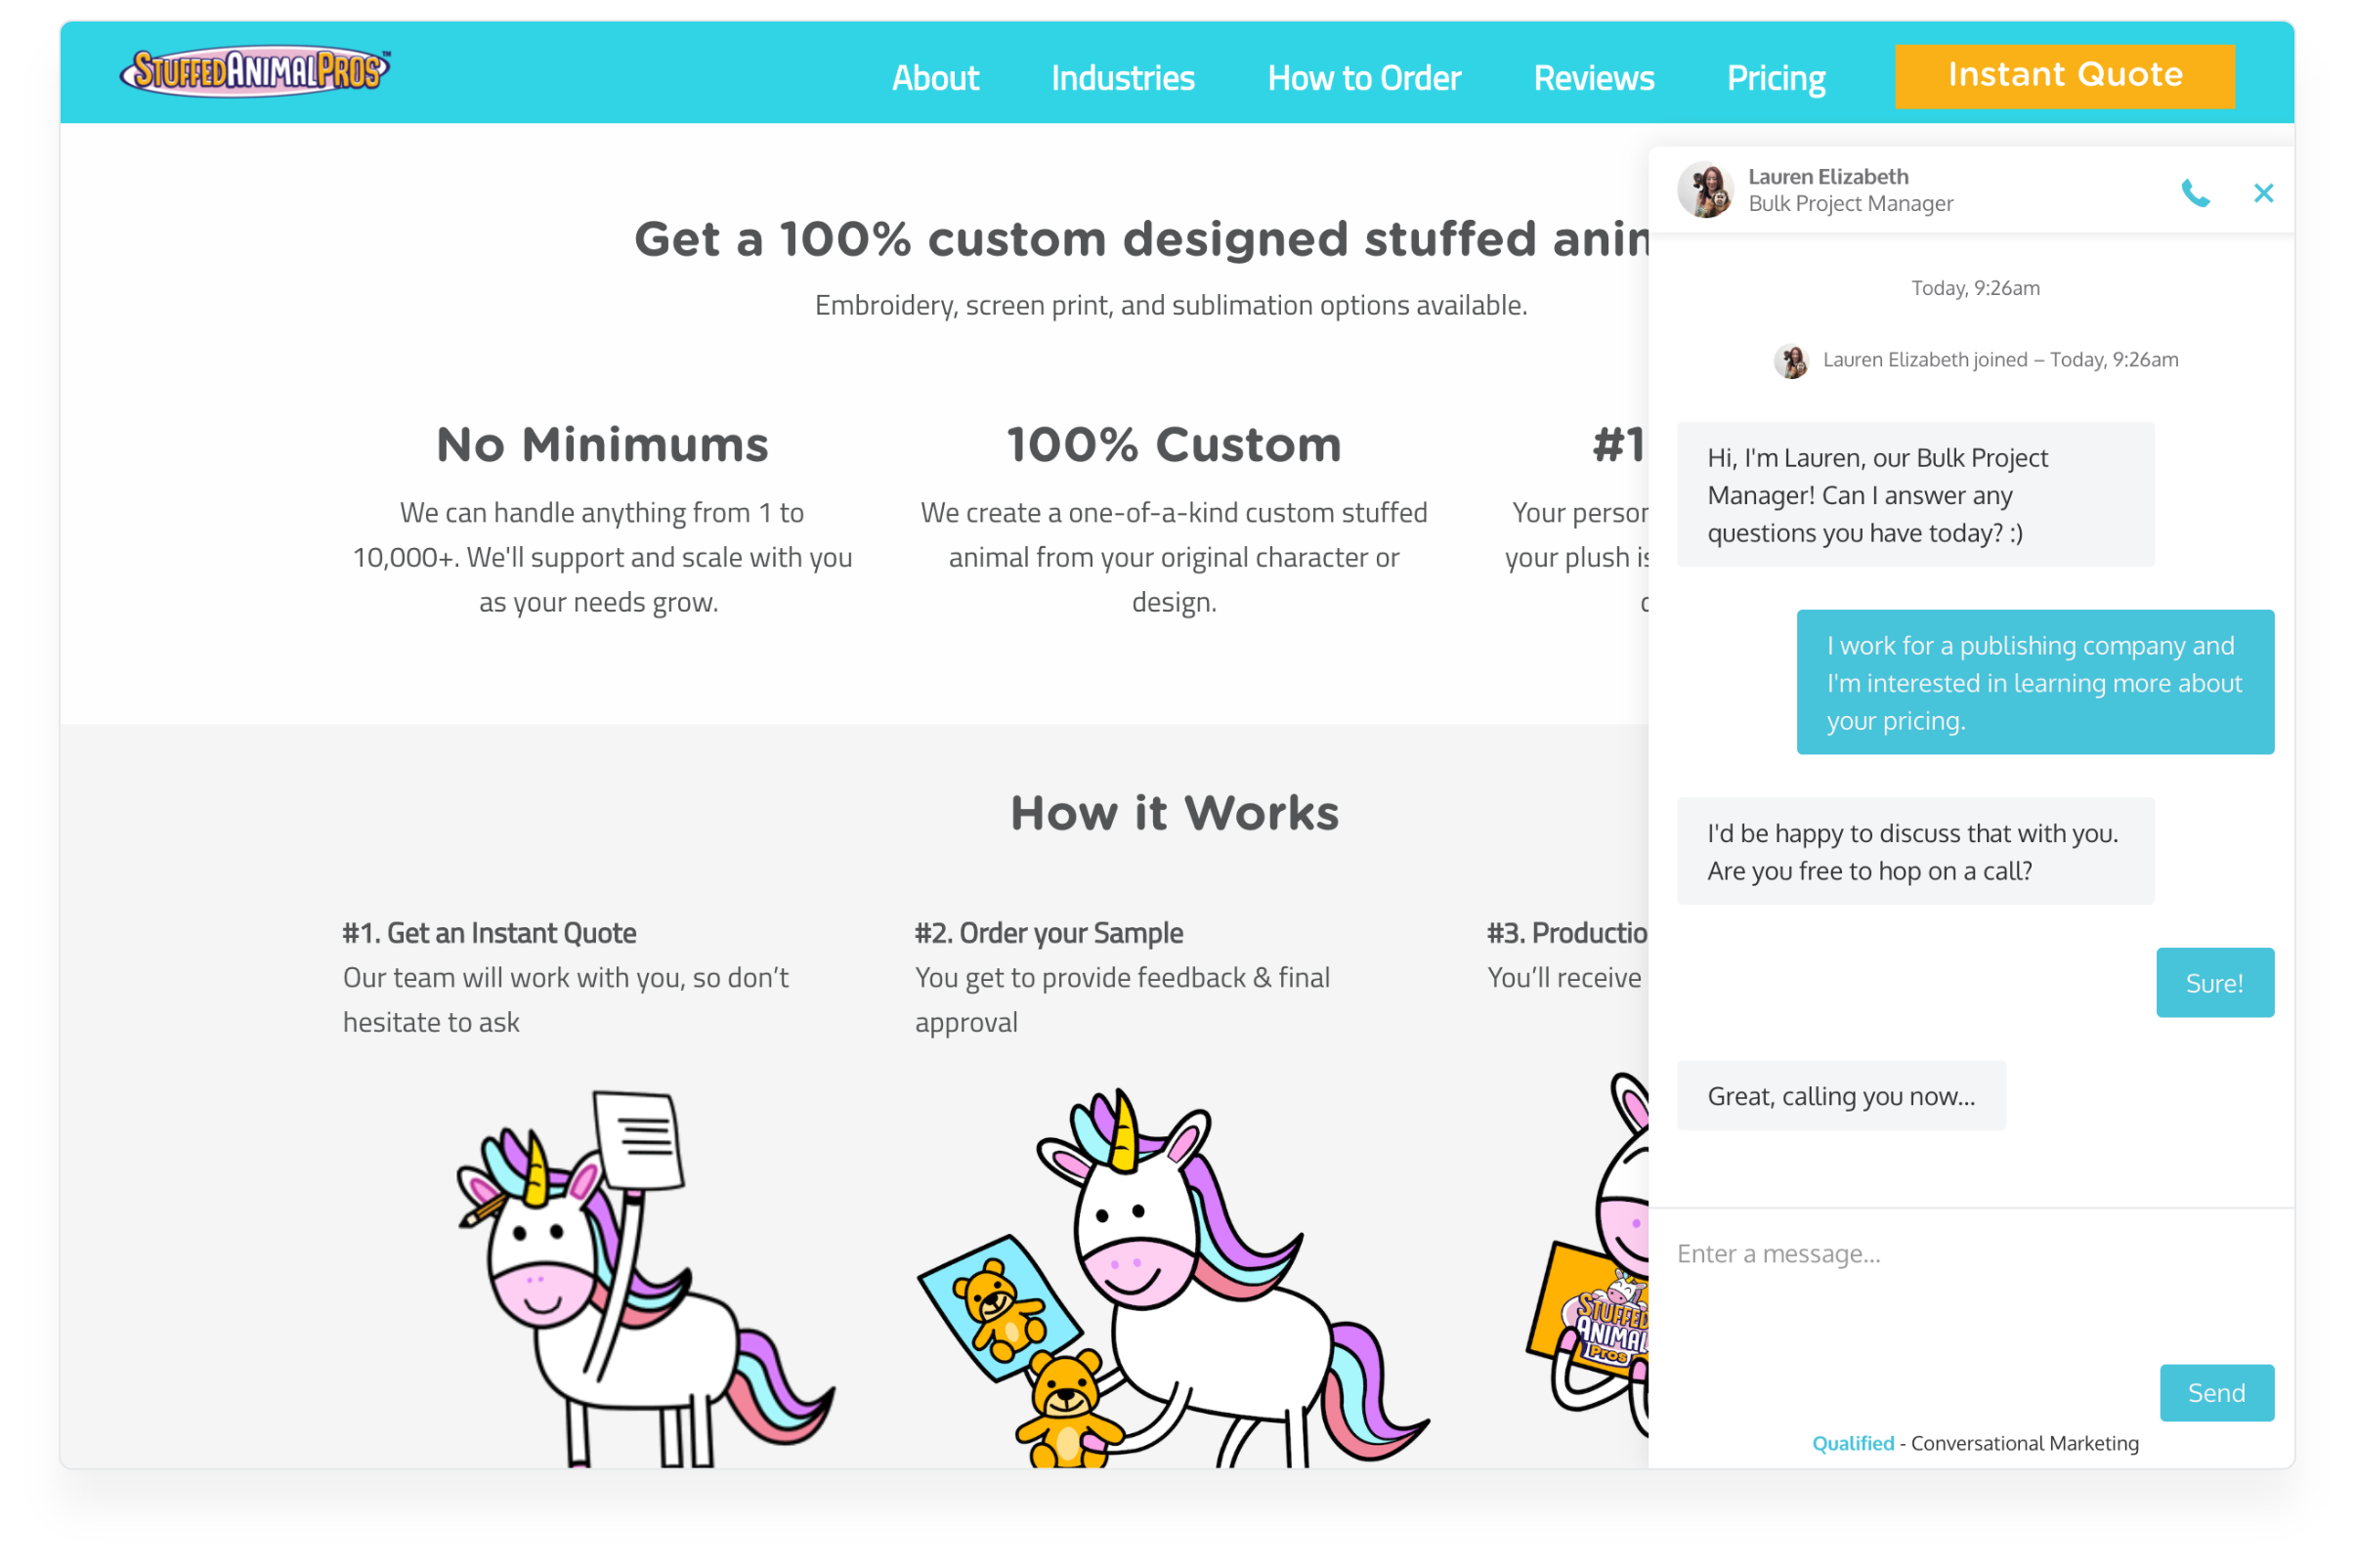 Stuffed Animal Pros uses Qualified to have real-time sales conversations on their website